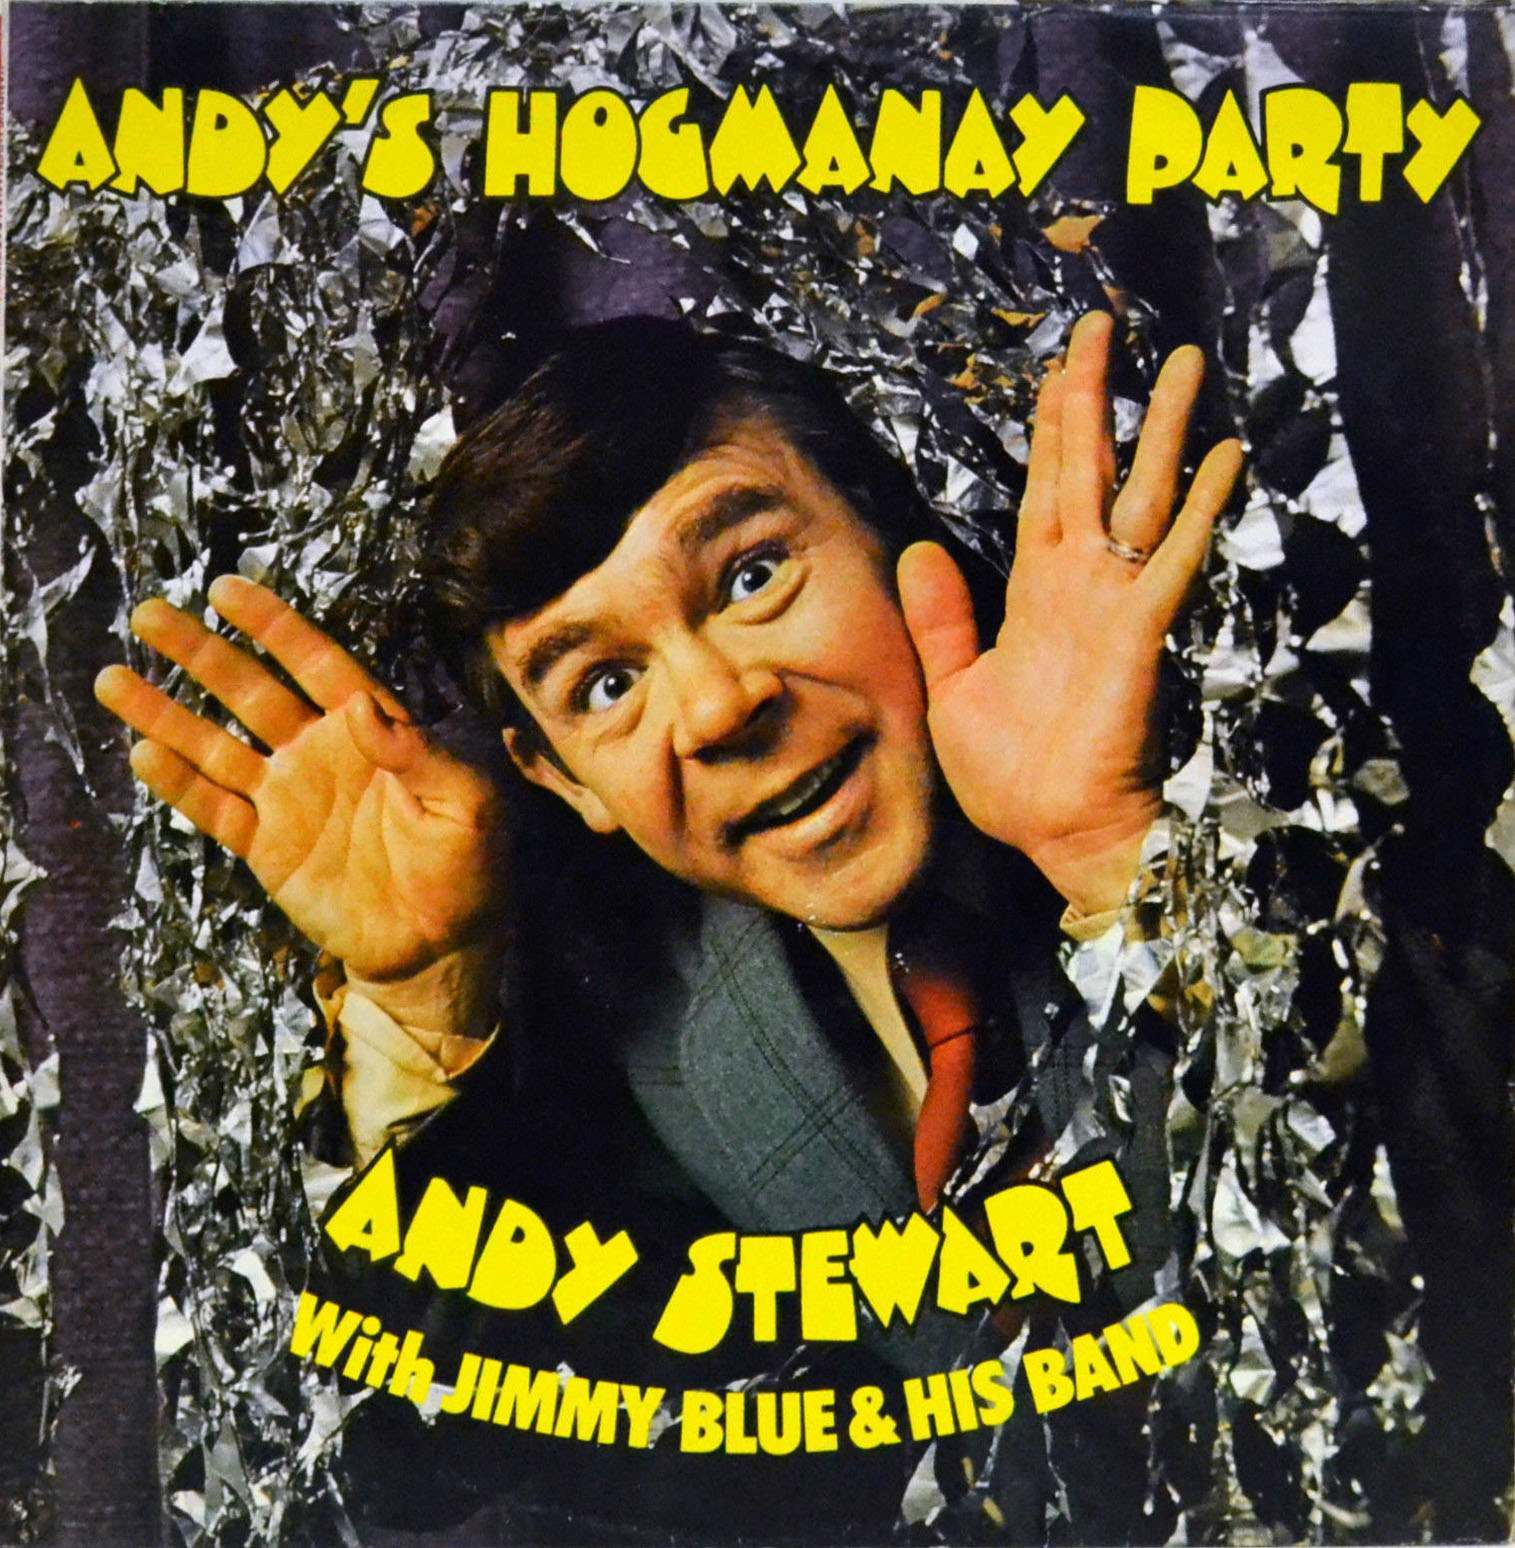 Andy Stewart, Andy's Hogmanay Party, 1977